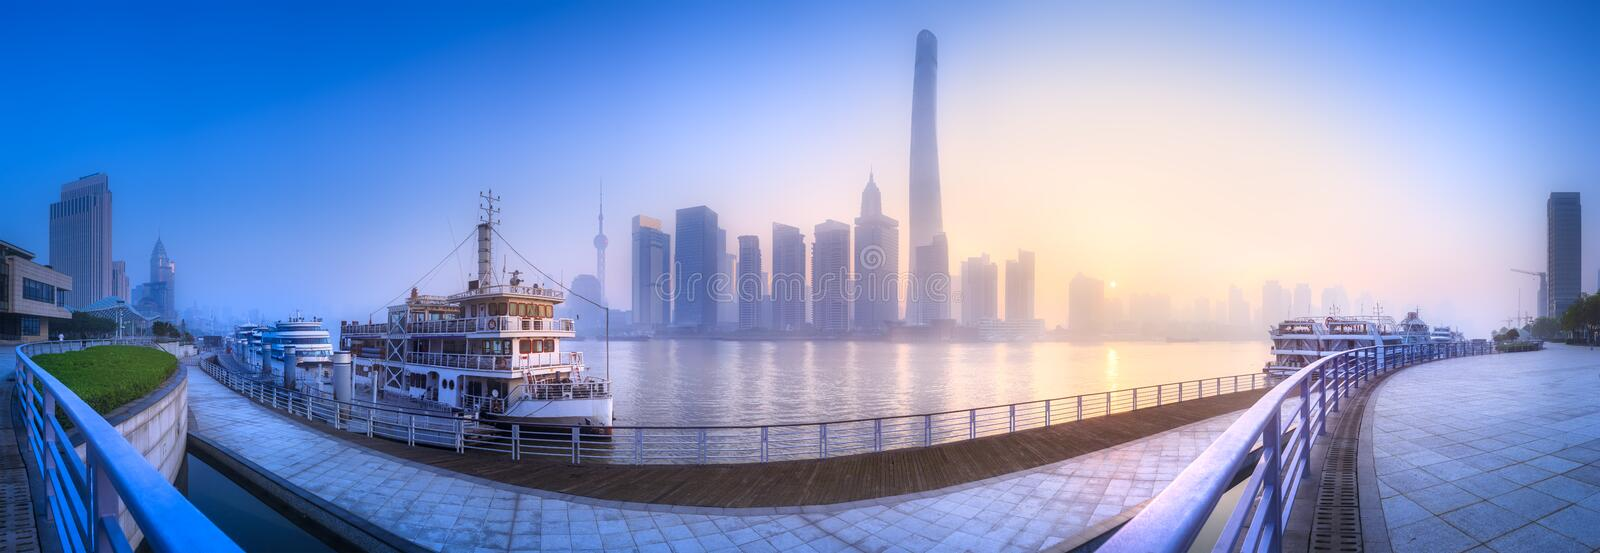 Download Shanghai skyline cityscape stock photo. Image of chinese - 97187844